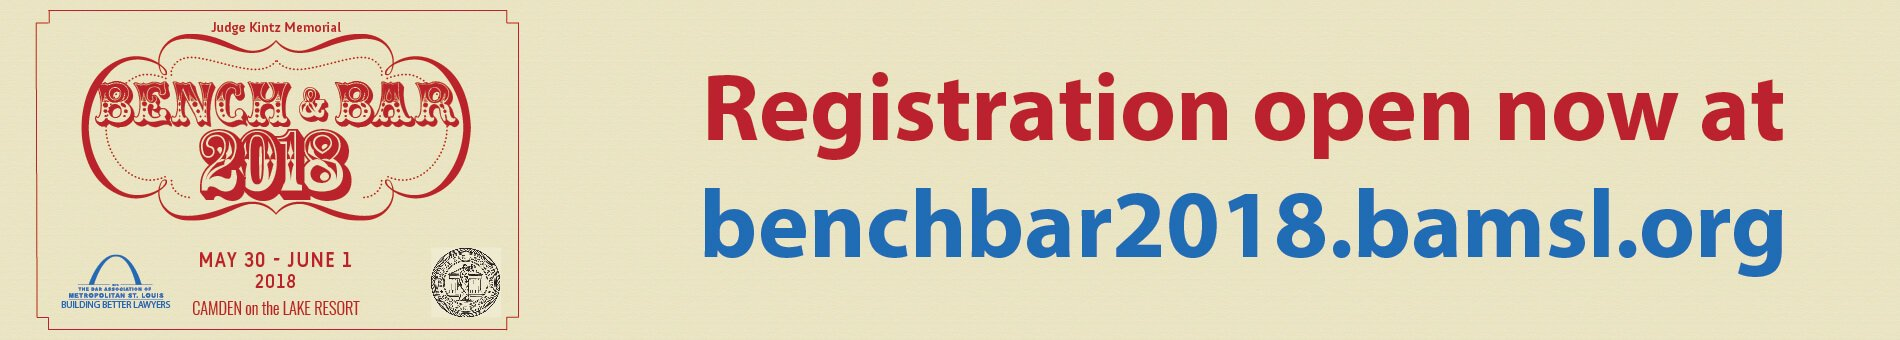 Bench and Bar Conference is May 30 - June 1